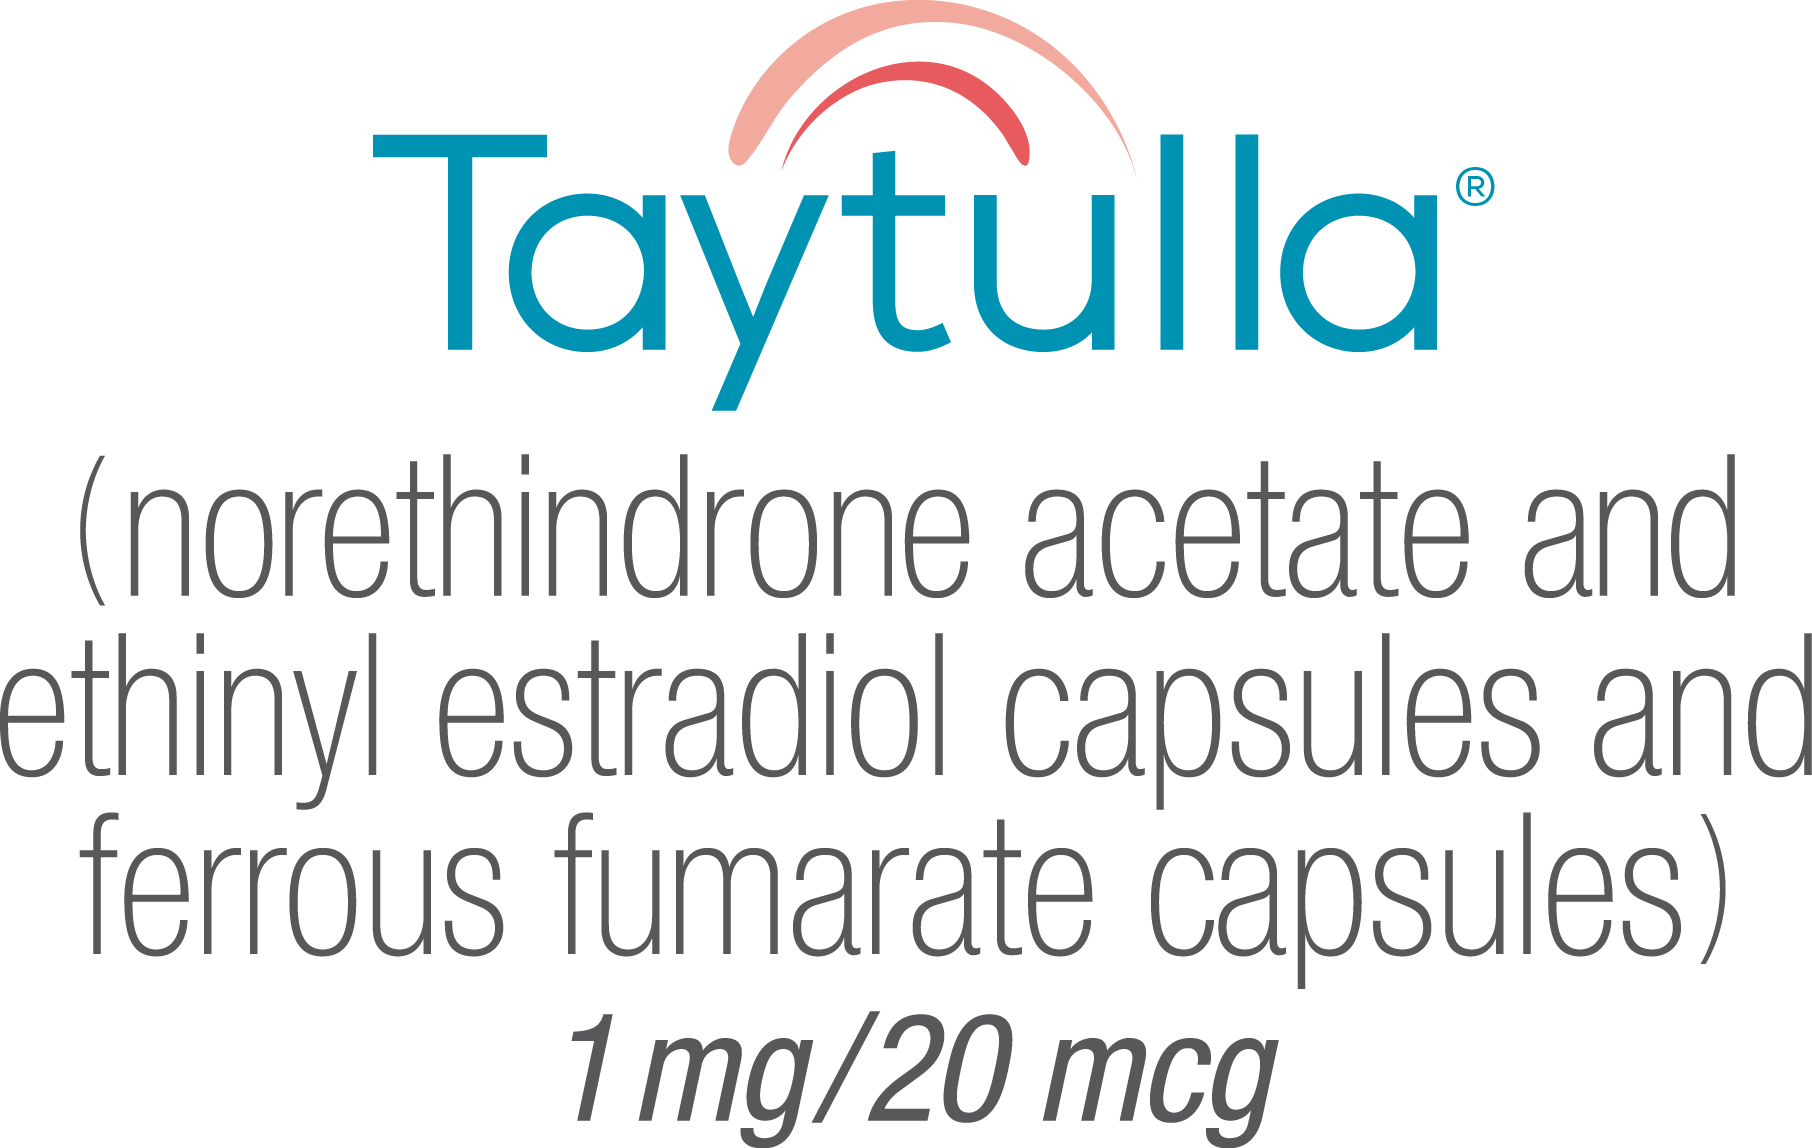 TAYTULLA® SAMPLE RECALL